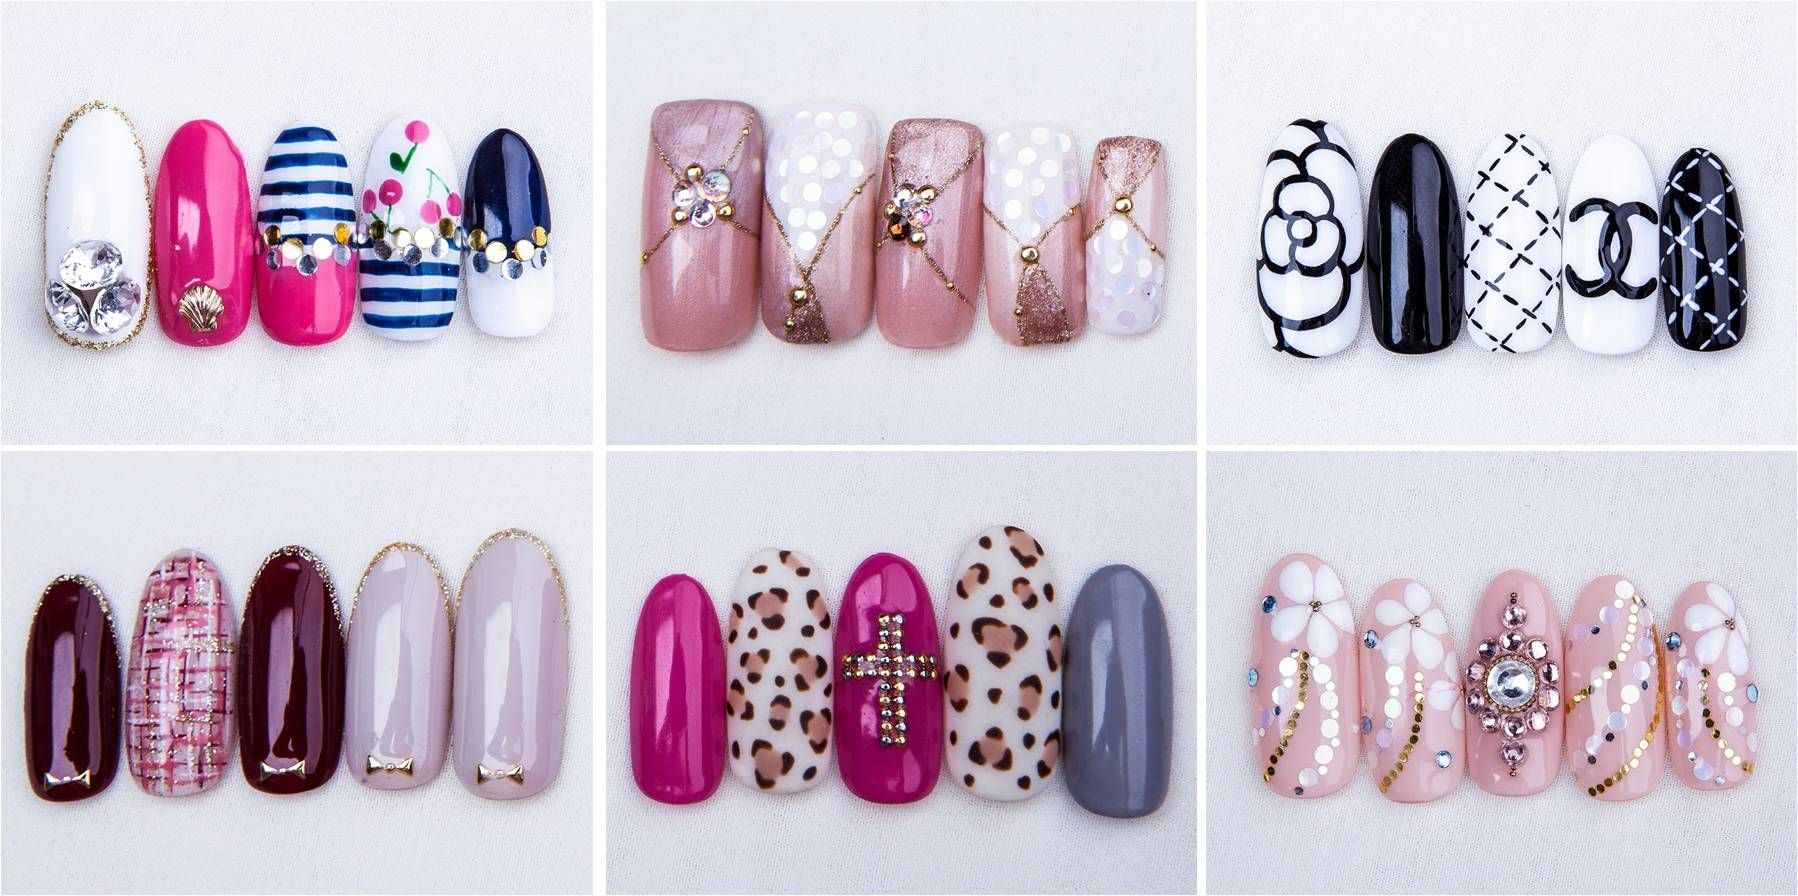 japanese nail designs - Поиск в Google | Nail Art | Pinterest | Gel ...